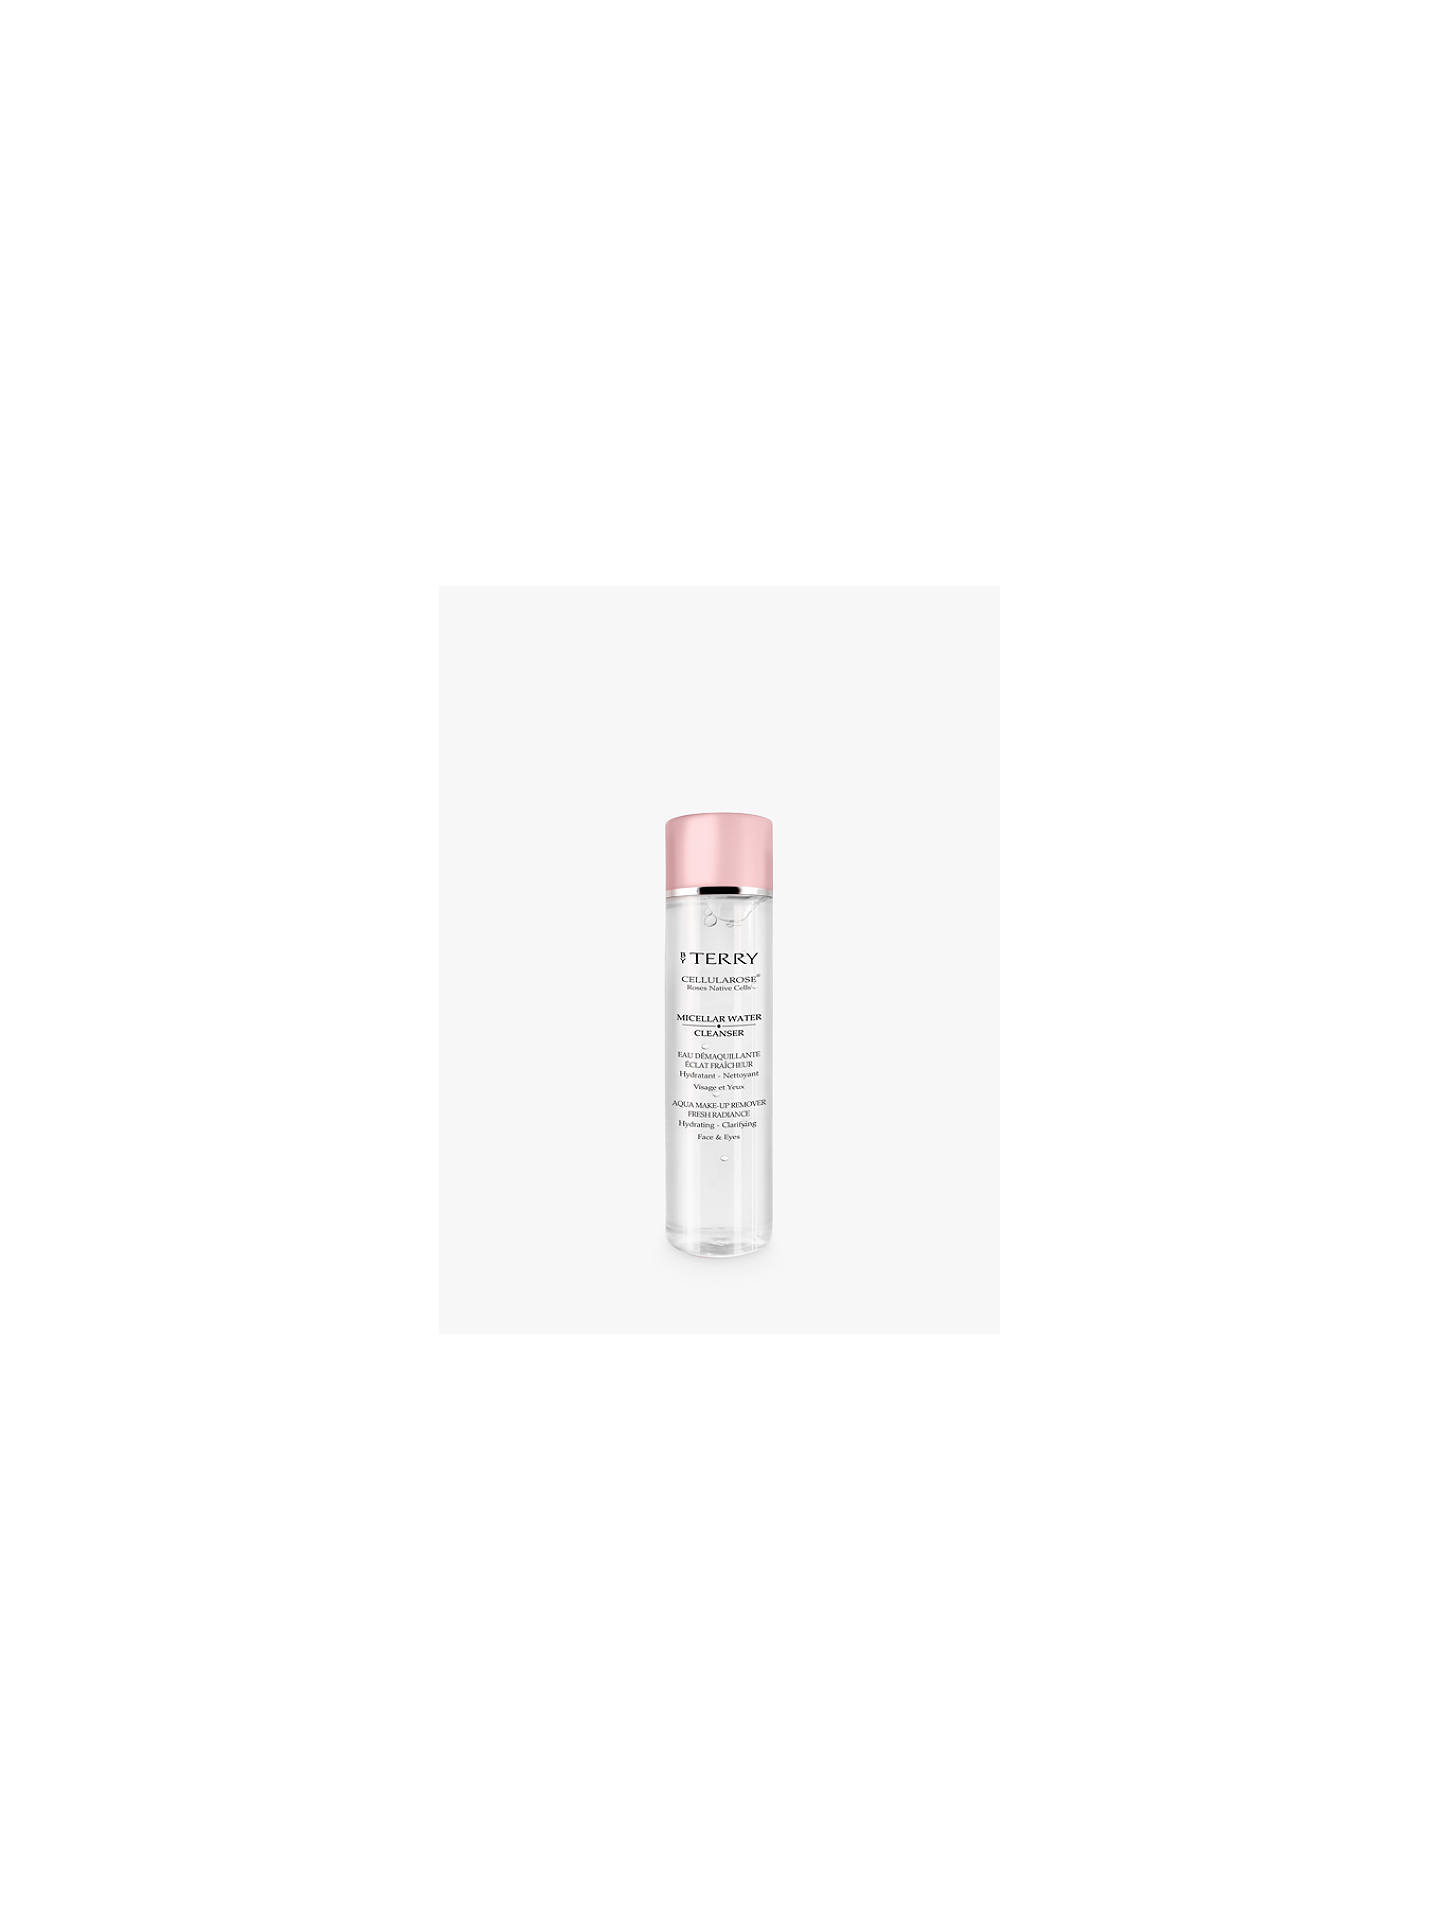 BuyBY TERRY Cellularose Micellar Water Cleanser, 150ml Online at johnlewis.com